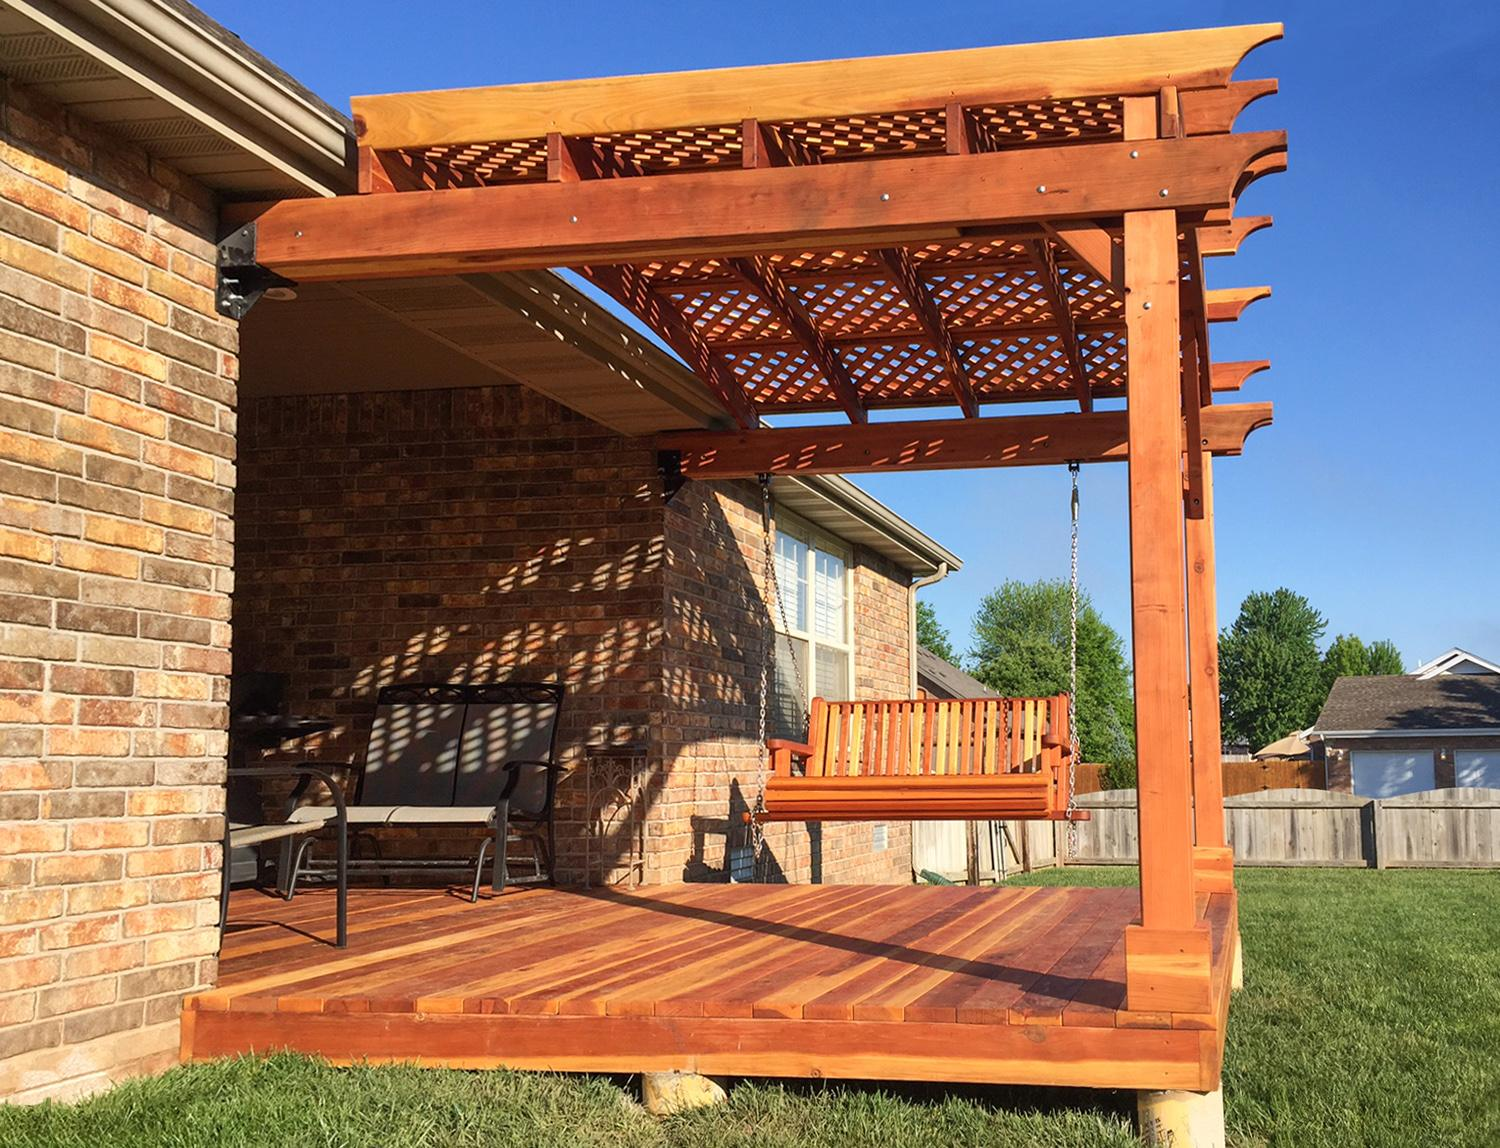 a pergola of your own but are stuck on deciding if you want to purchase a prefab pergola kit or build your own here are some pros and cons of each - Pergola Kit